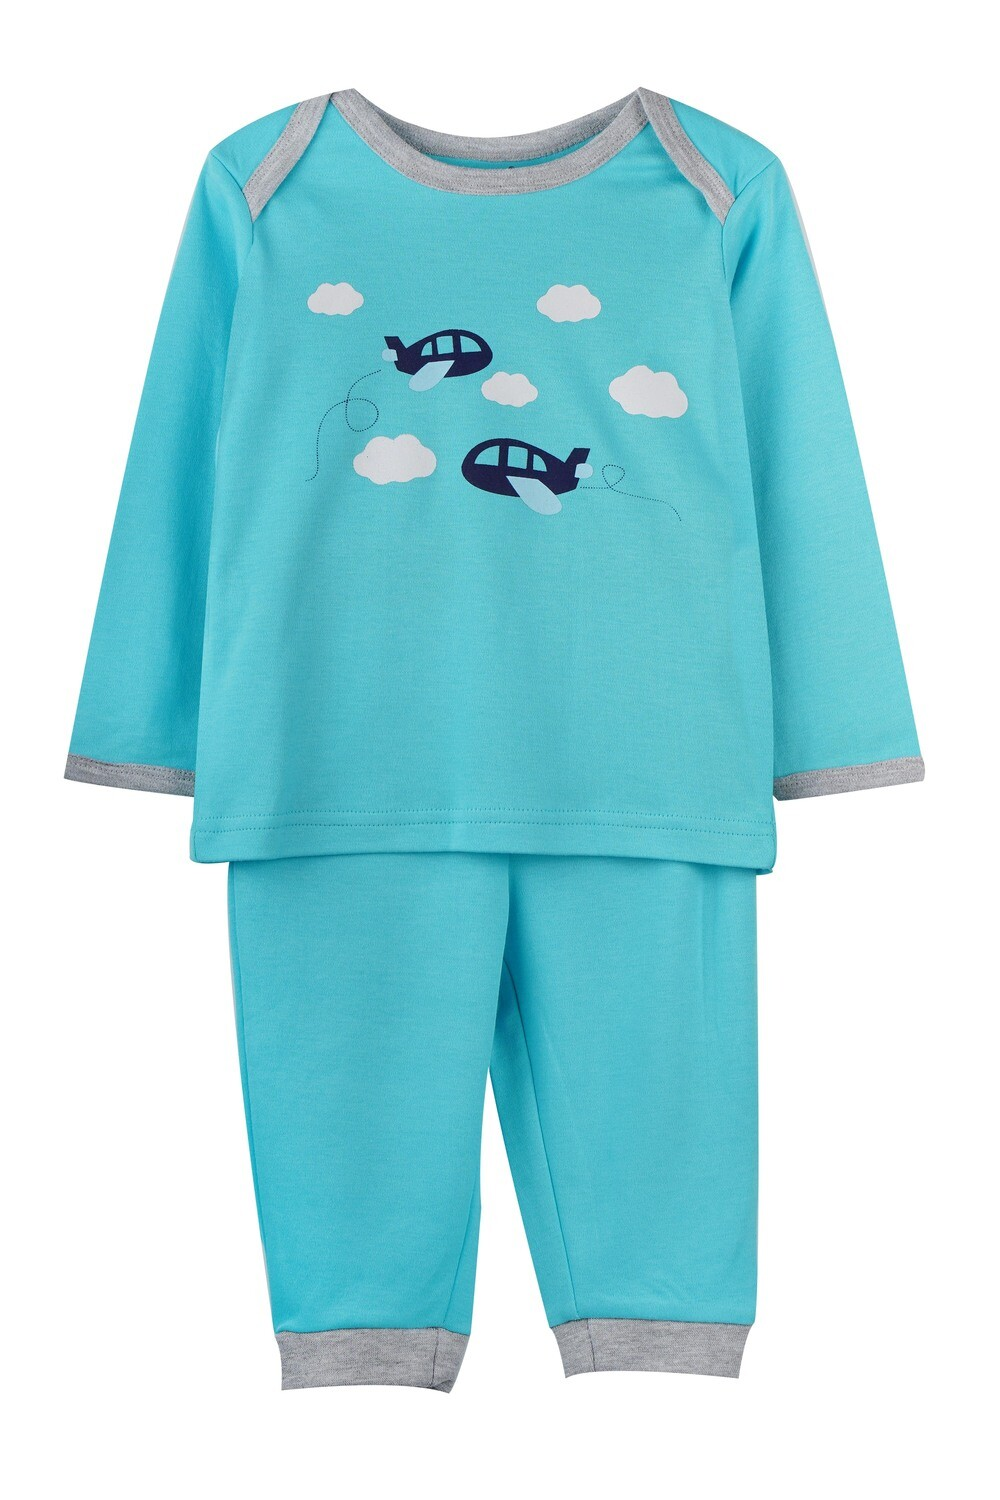 KEDRICK BLUE RADIANCE Full Sleeve Top and Pant for Baby Boys